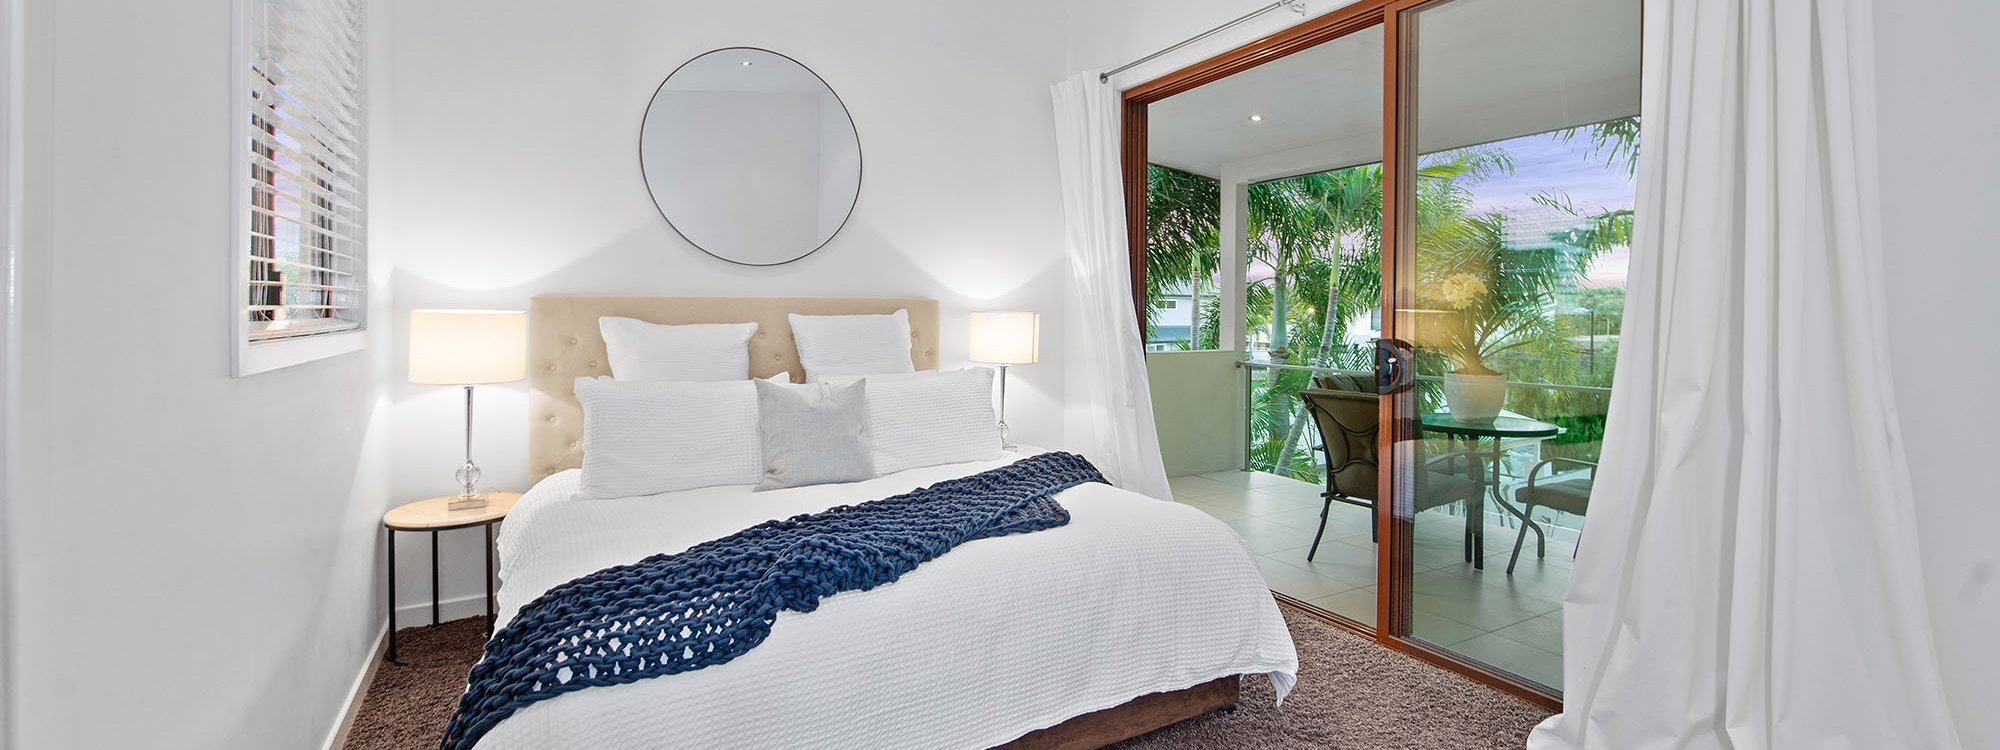 Casa Grande - Broadbeach Waters - Bedroom 3